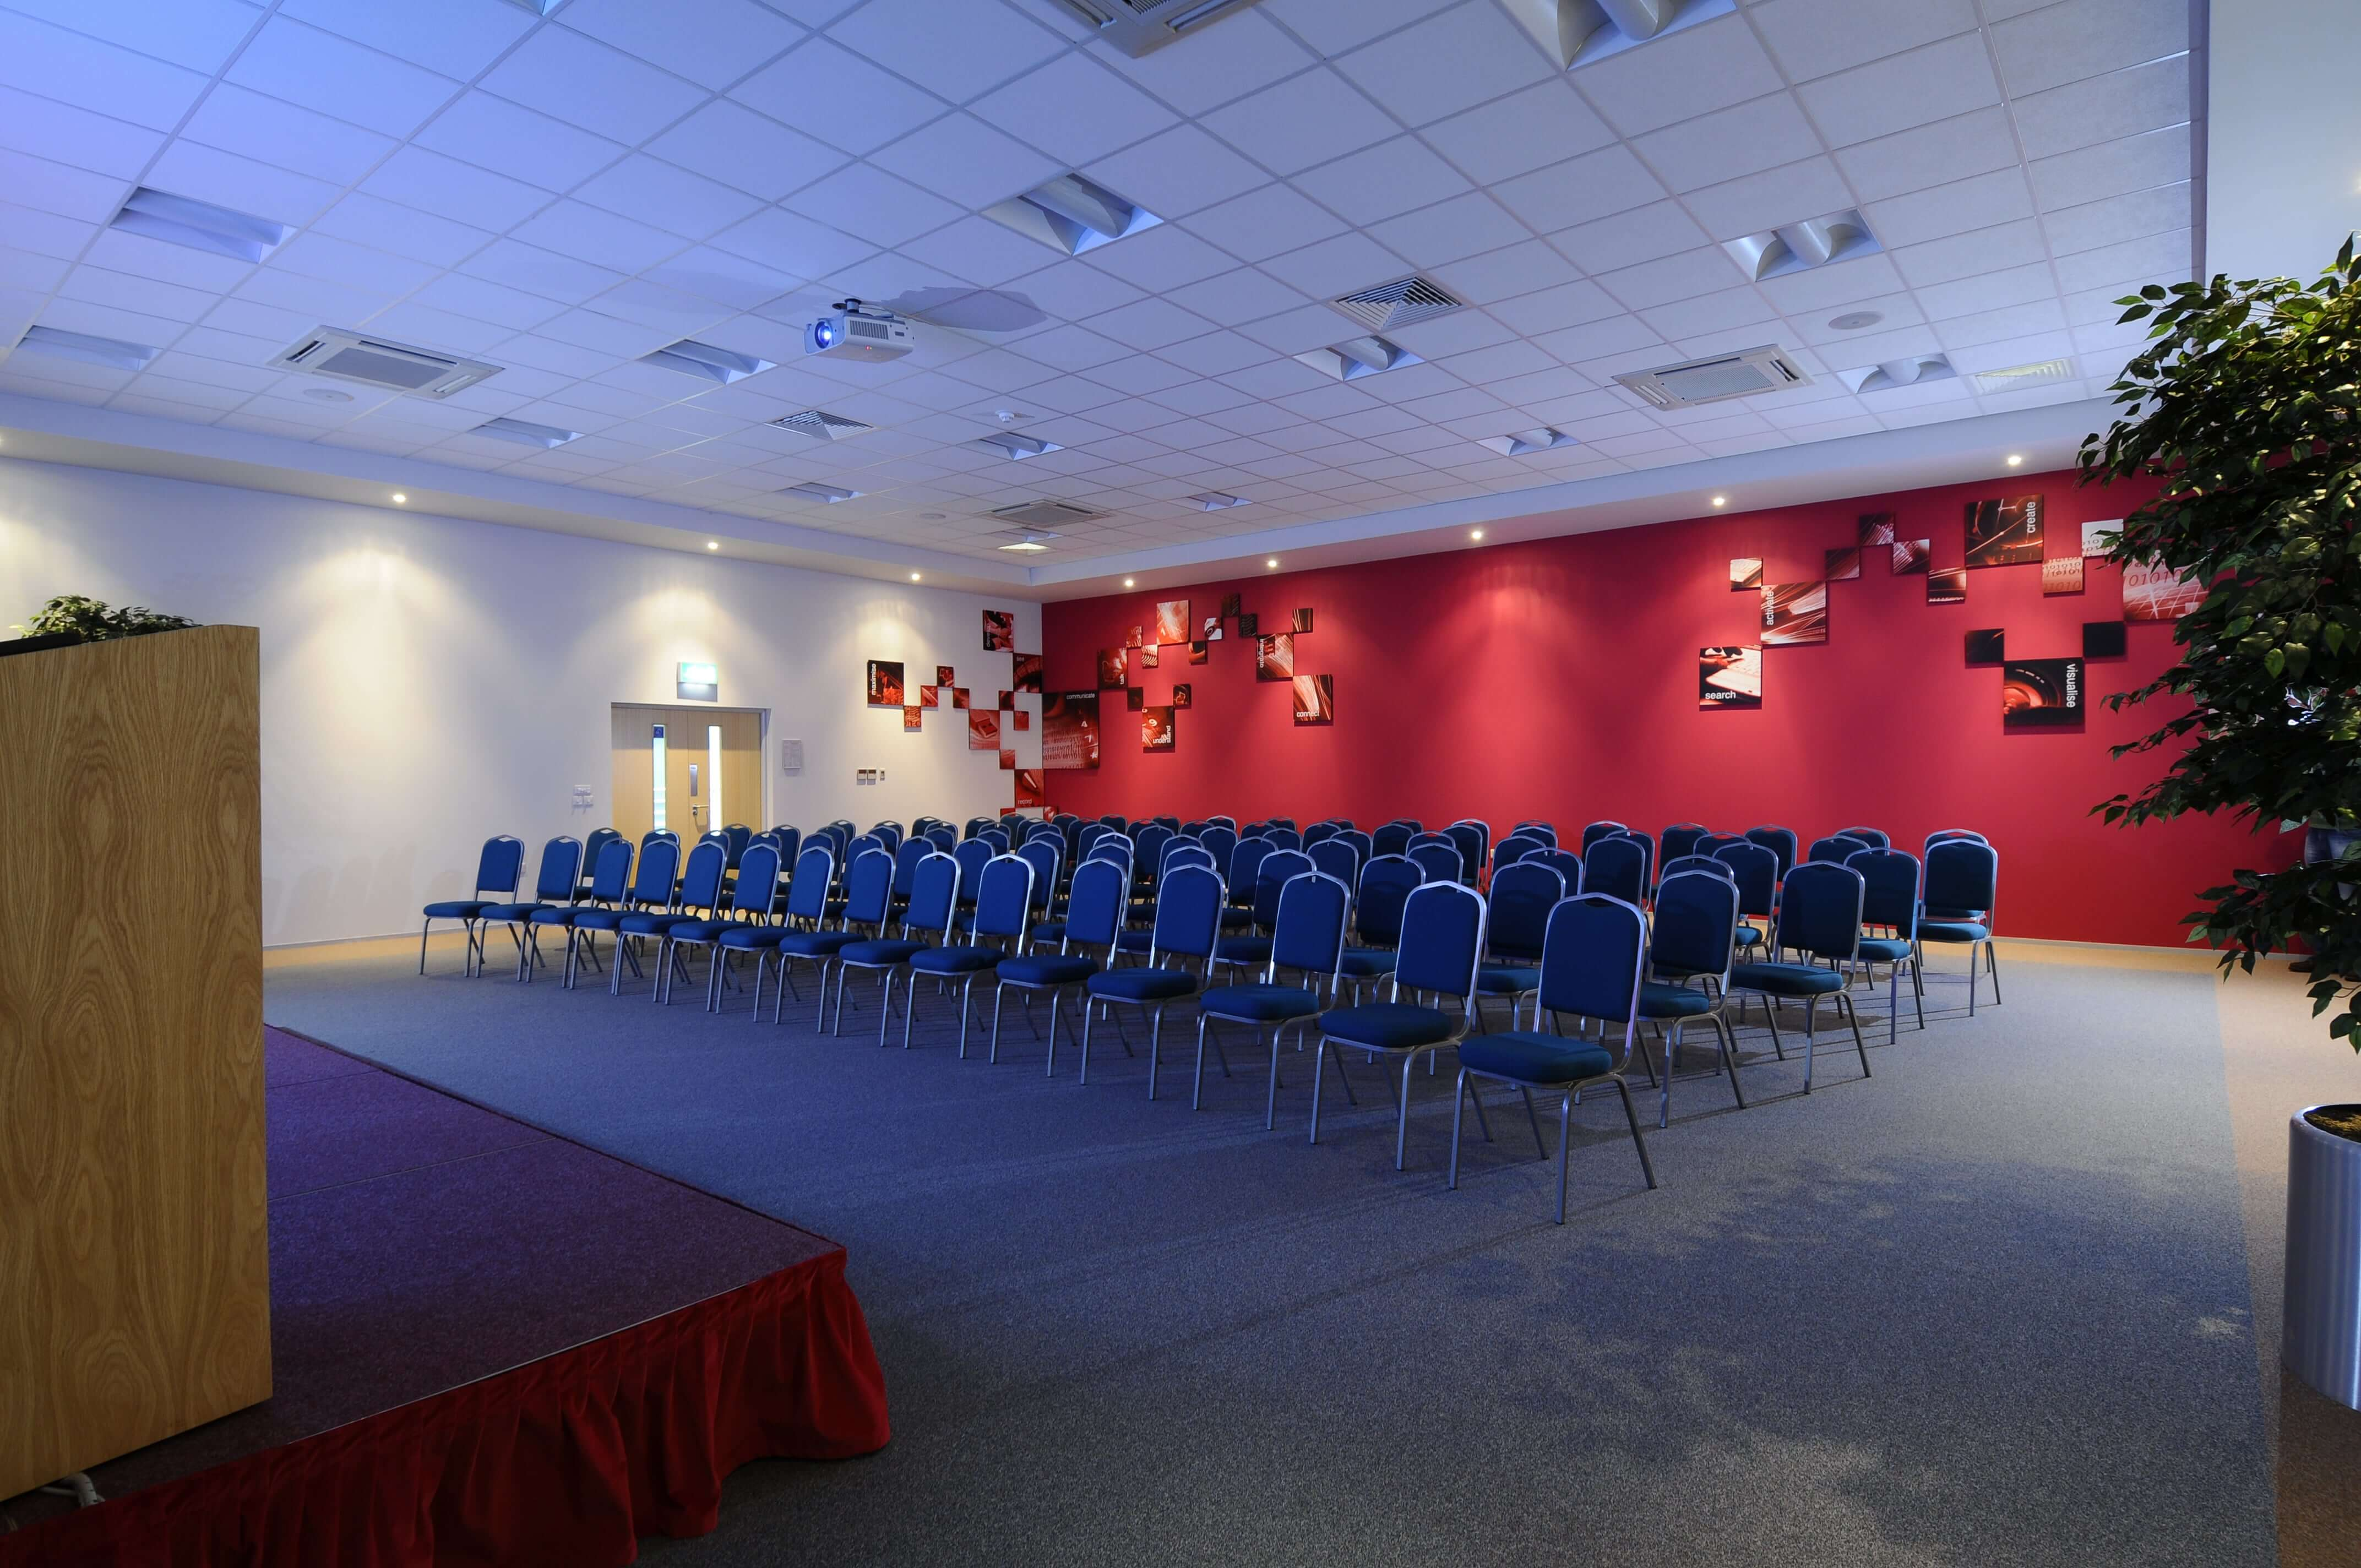 Theatre conference room with seats out